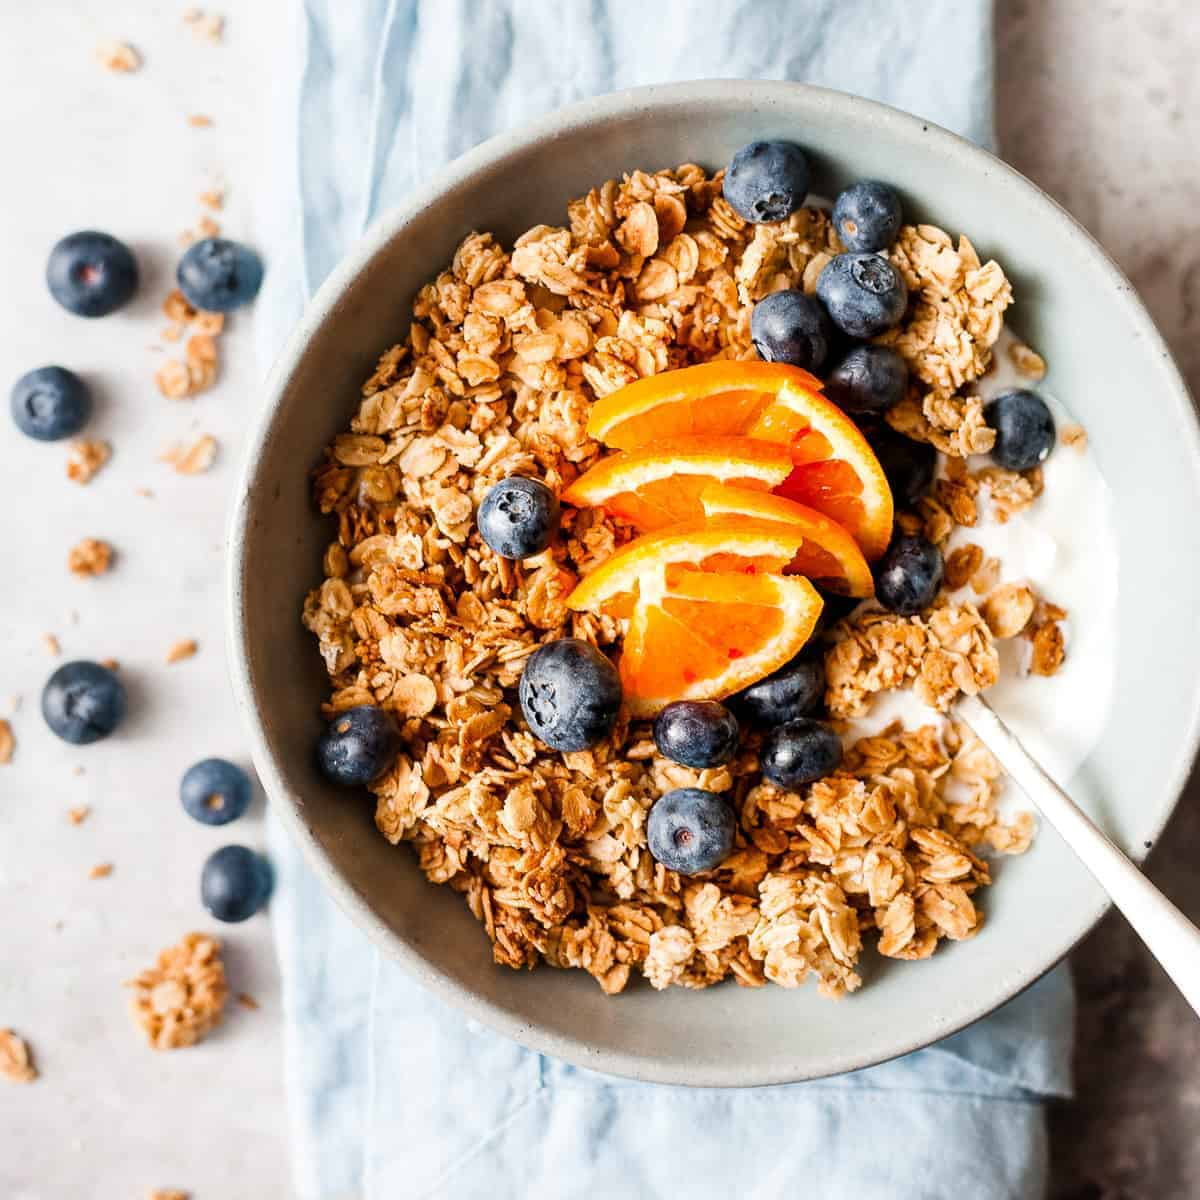 Homemade granola with greek yoghurt and fruit made with Aldi ingredients.